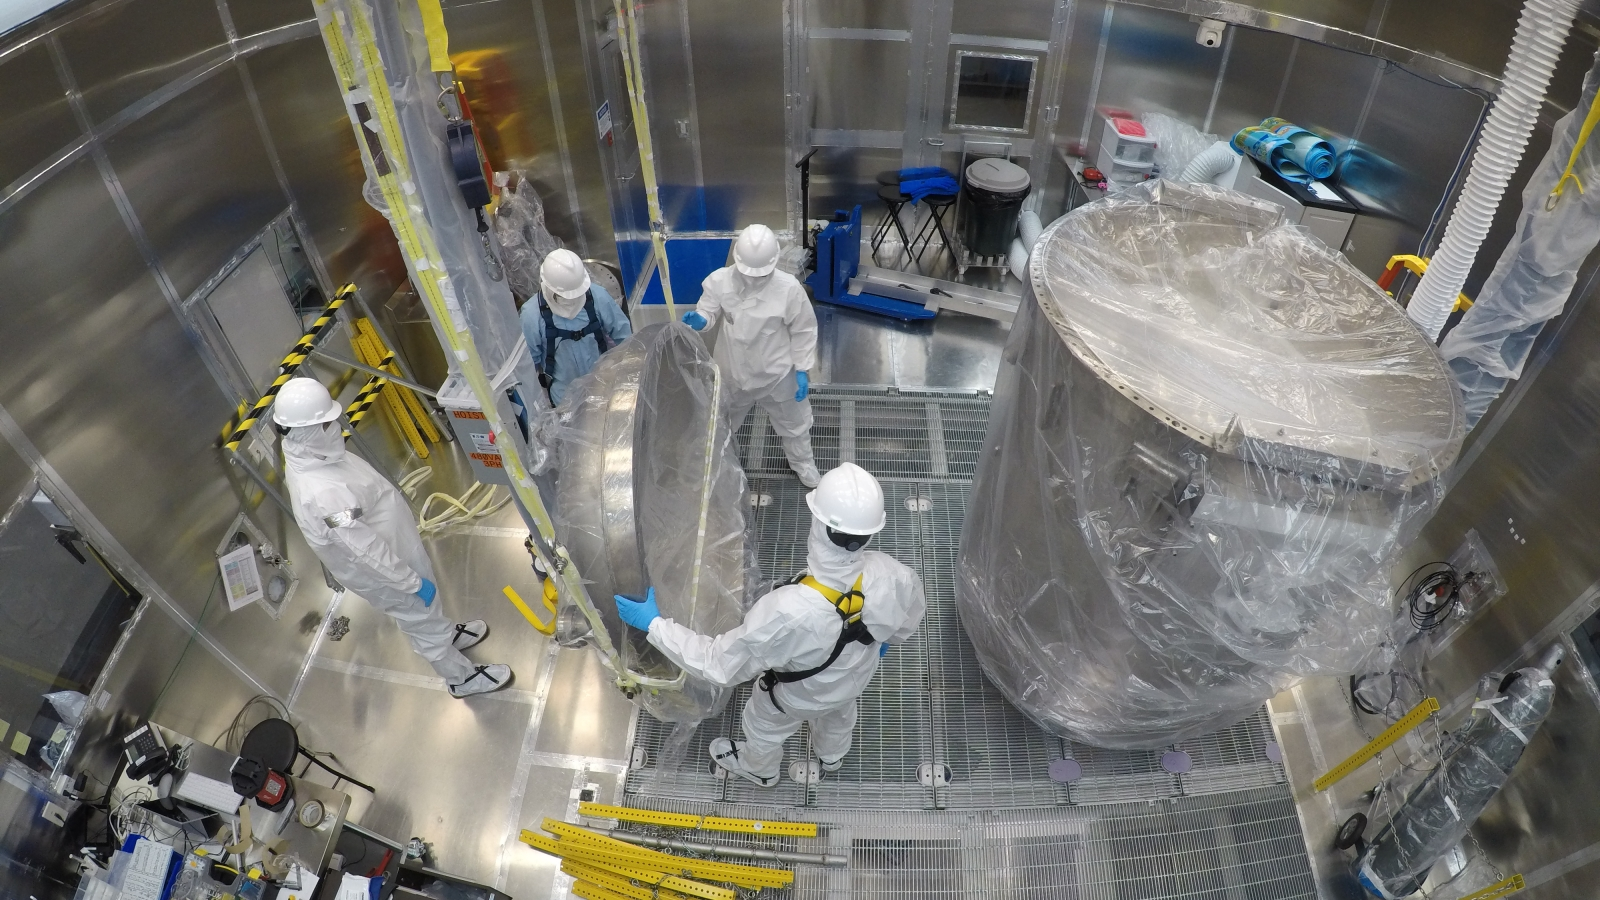 Engineers clean the LUX-ZEPLIN cryostat inside the Surface Lab's Class 1000 clean room in preparation for the next generation search for dark matter.